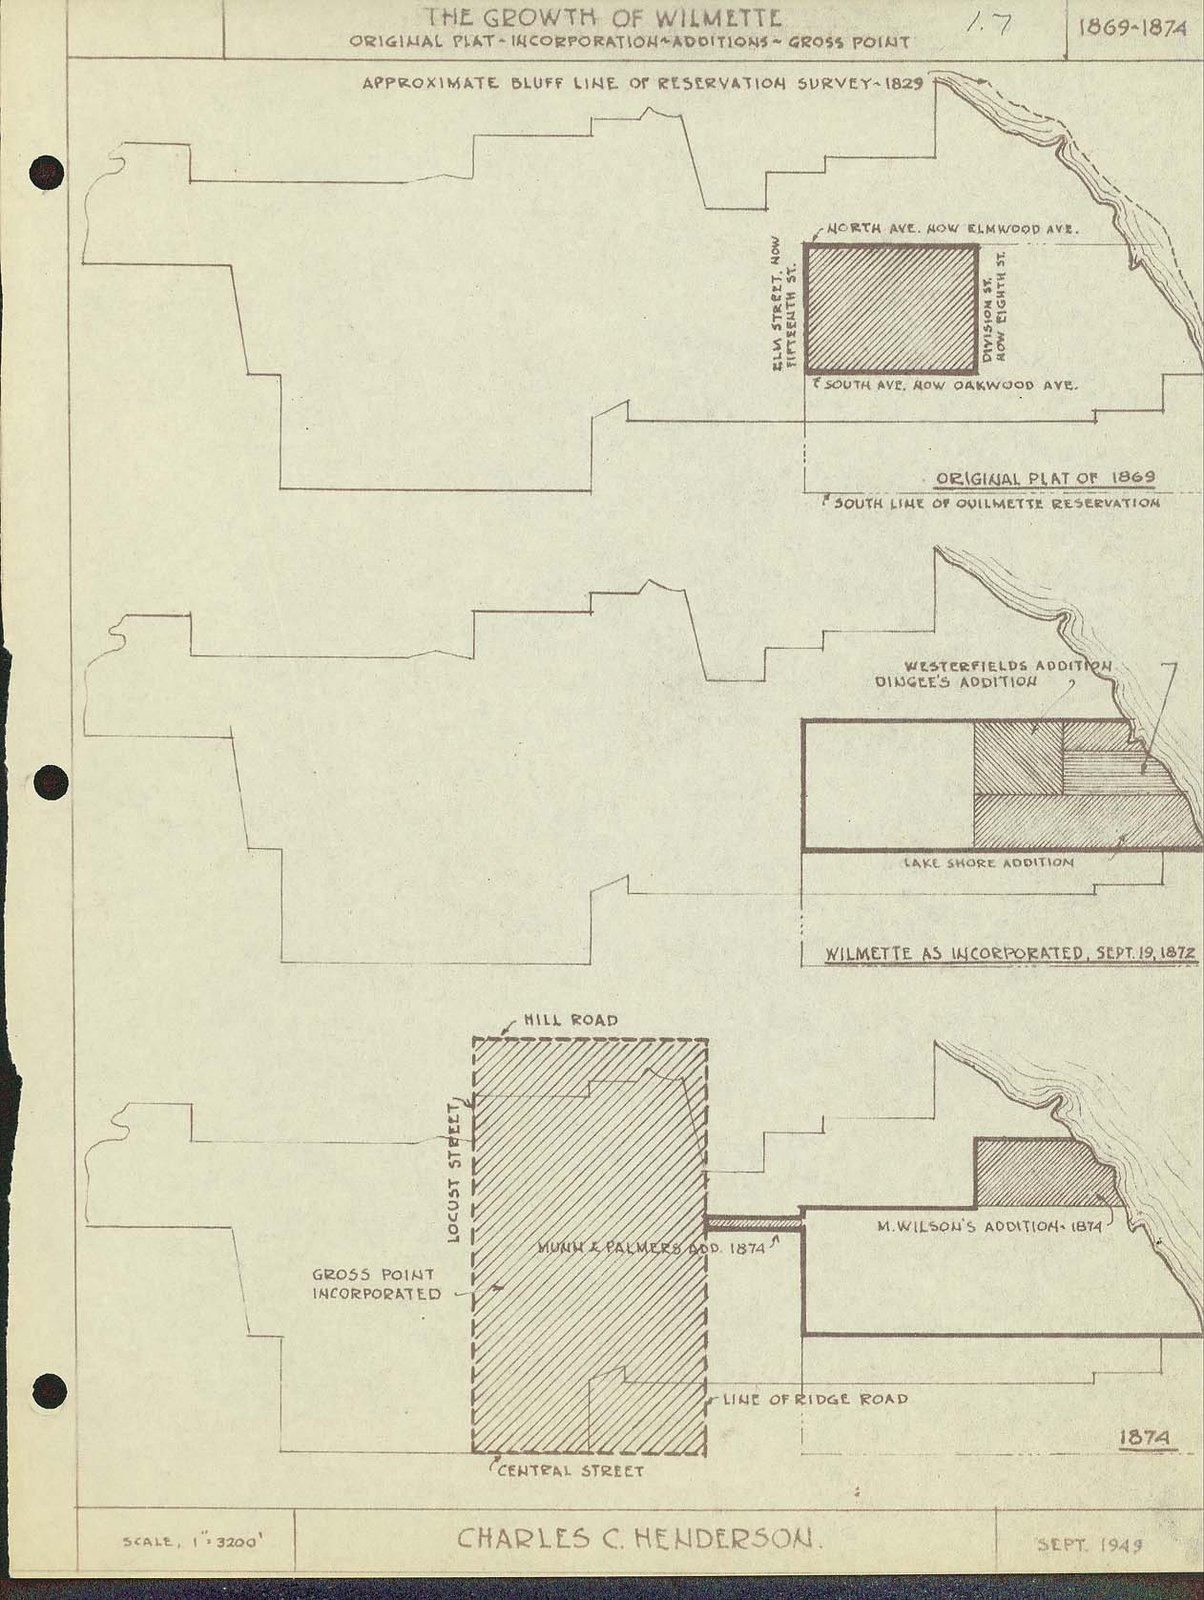 The Growth of Wilmette: original plat incorporation-additions--Gross Point, 1869-1874